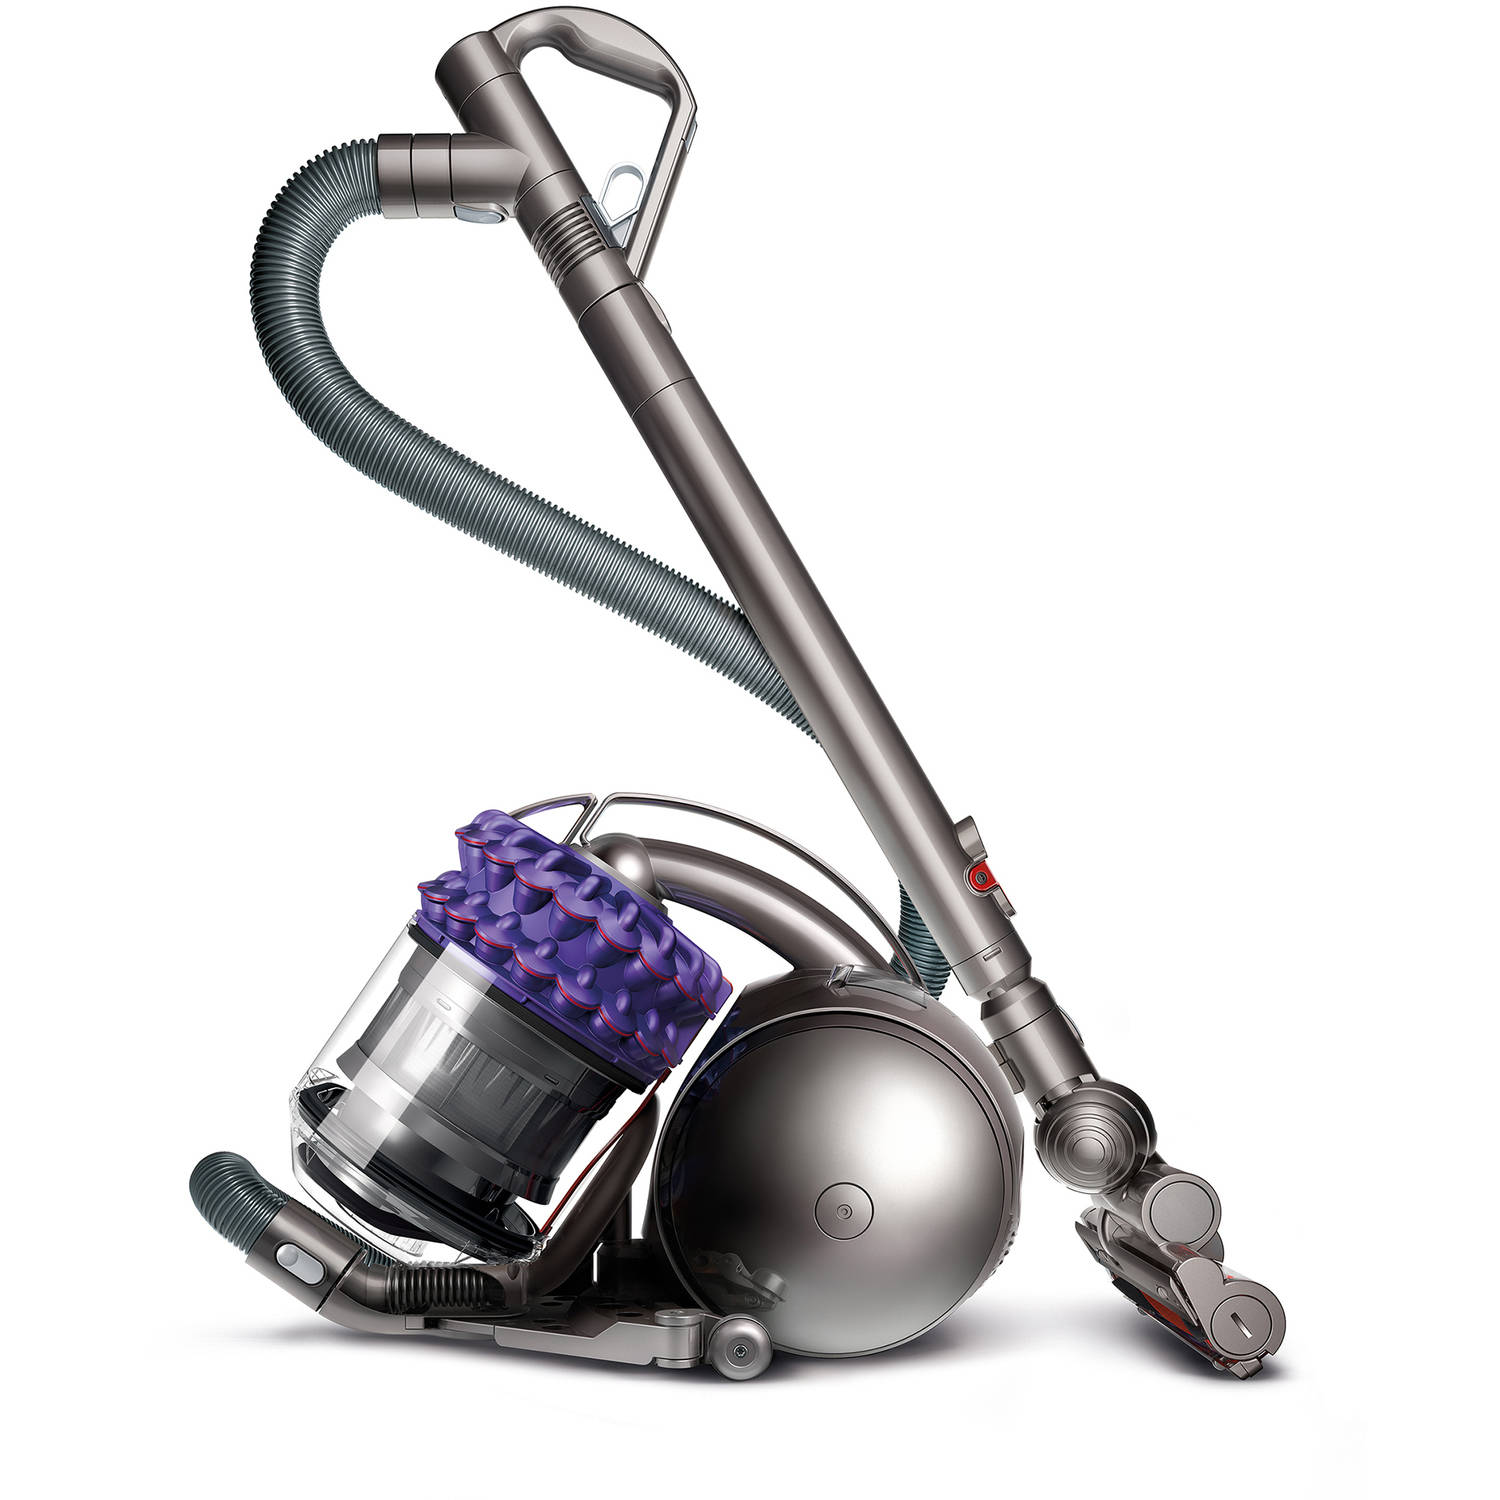 Dyson Big Ball Animal Bagless Canister Vacuum, 65024-01